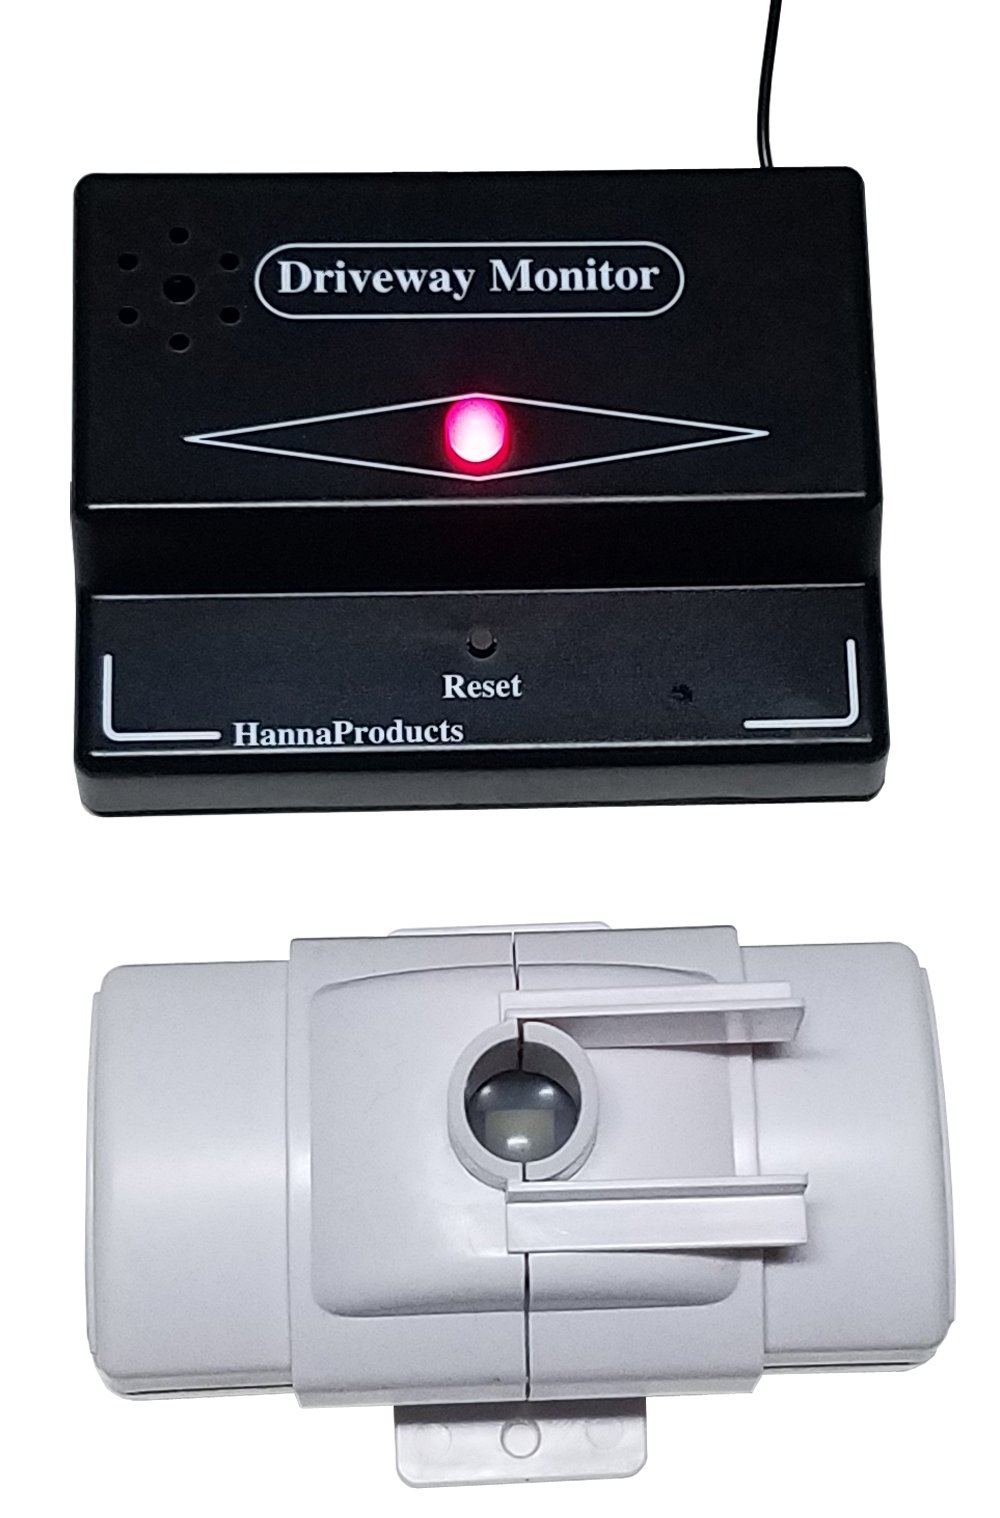 Hanna Products Driveway Monitor Model 1800 - Home Security Protection both indoors and outdoors - New design feature with variable shutters that controls detection area.